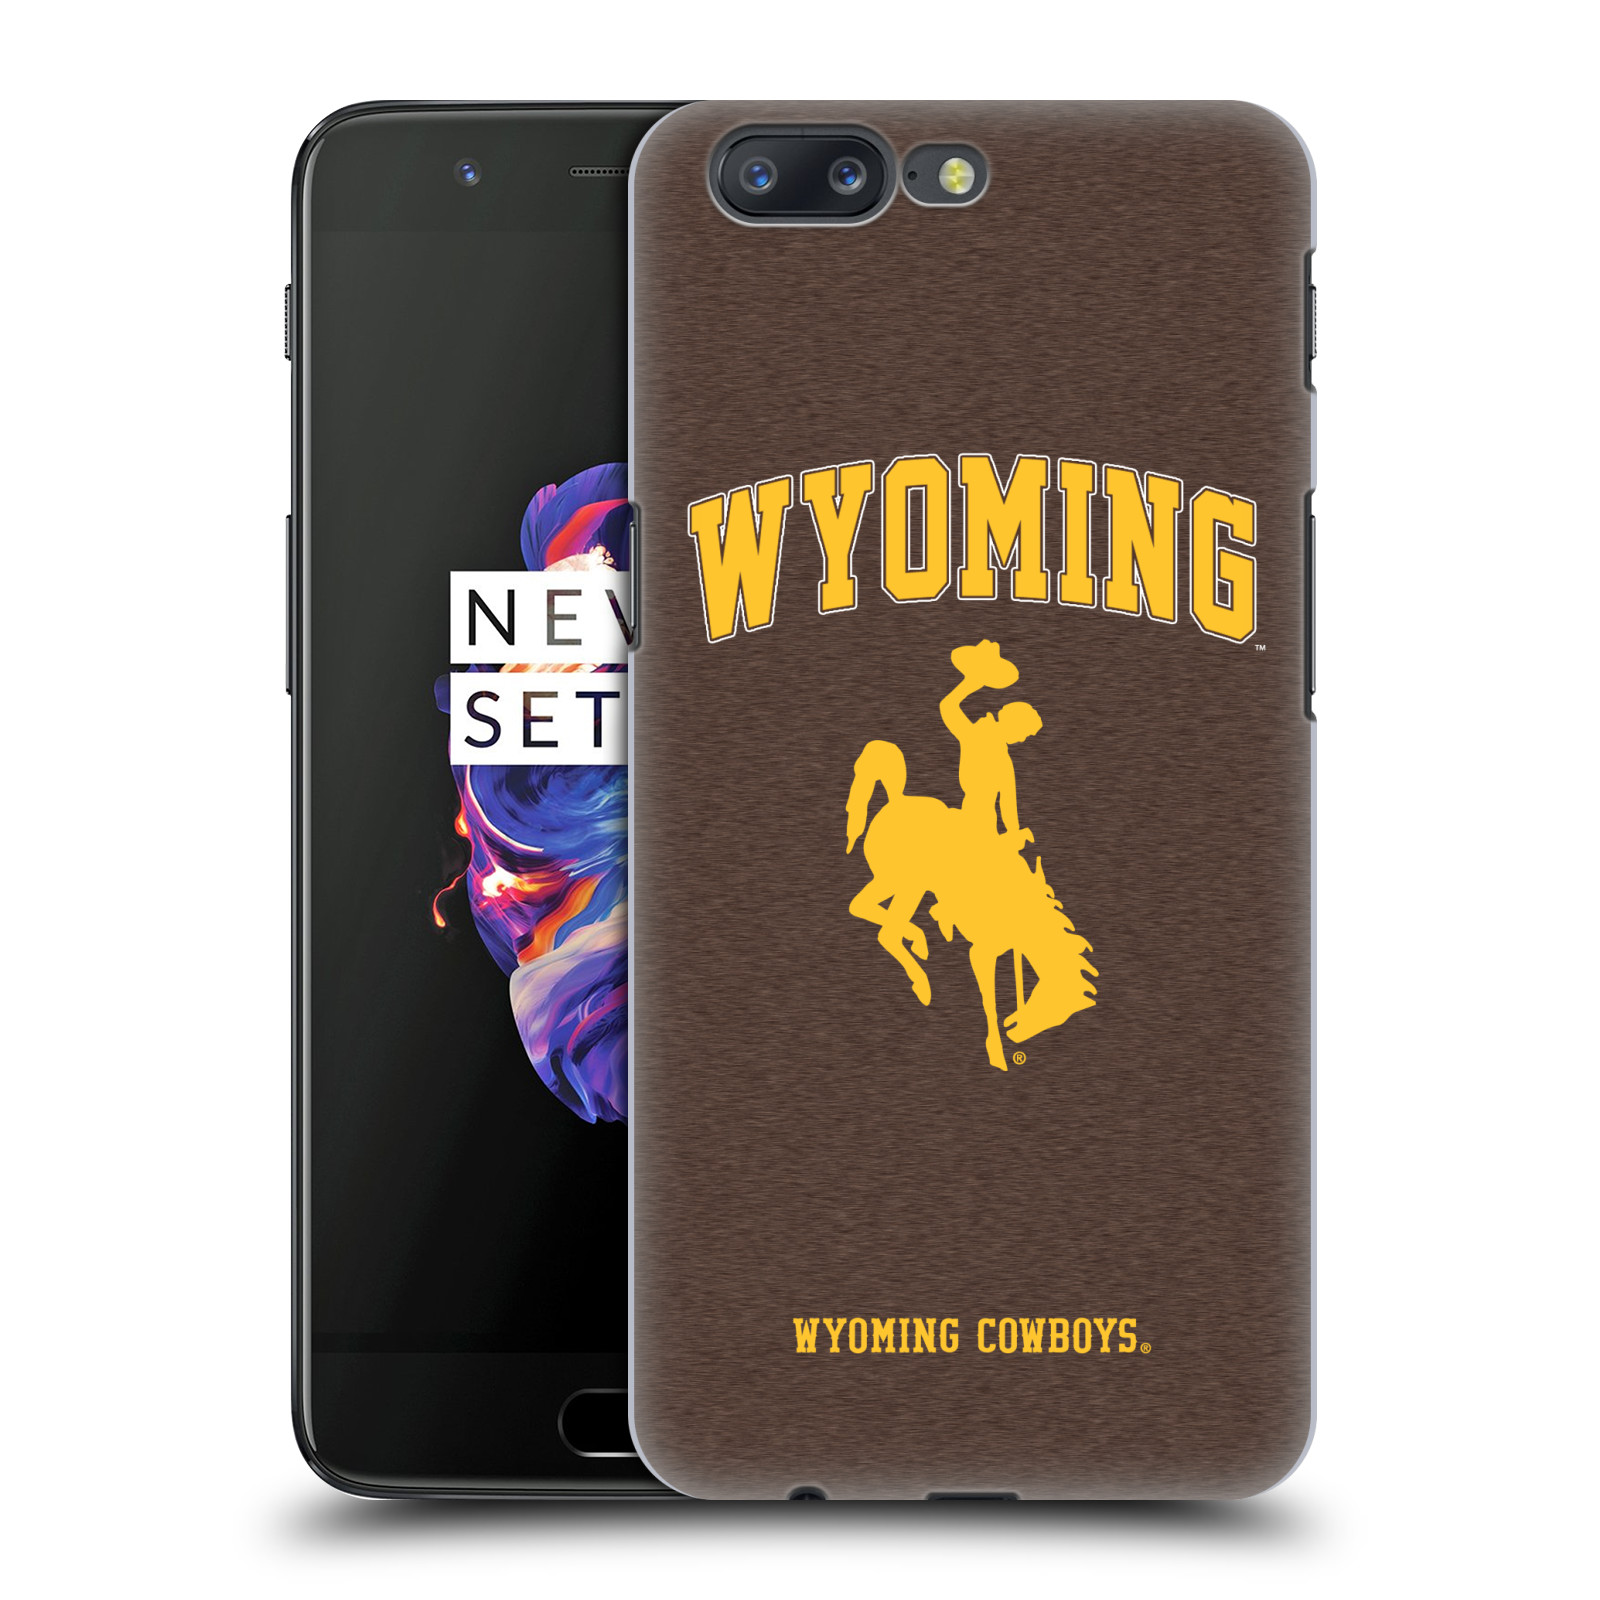 OFFICIEL-UNIVERSITY-OF-WYOMING-UW-ETUI-COQUE-D-039-ARRIERE-POUR-ONEPLUS-ASUS-AMAZON